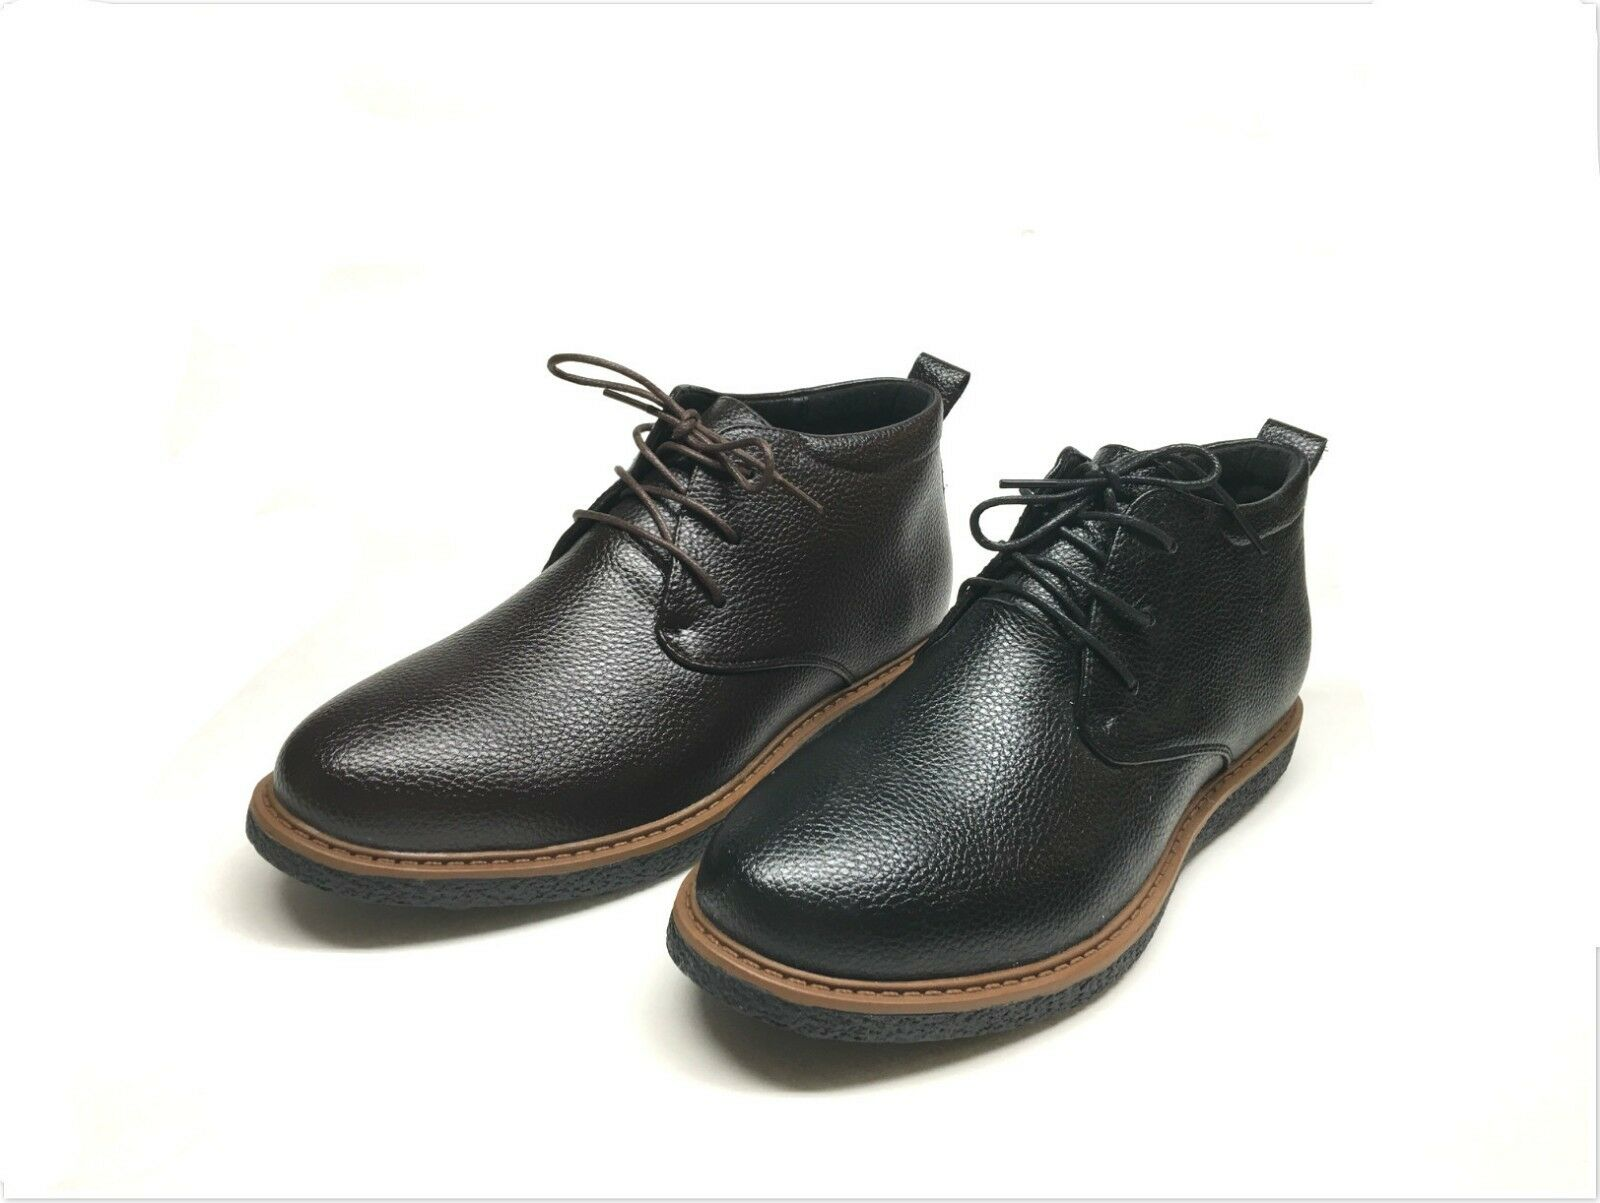 NEW MEN'S LACE UP CASUAL FASHION ANKLE CHUKKA BOOTS